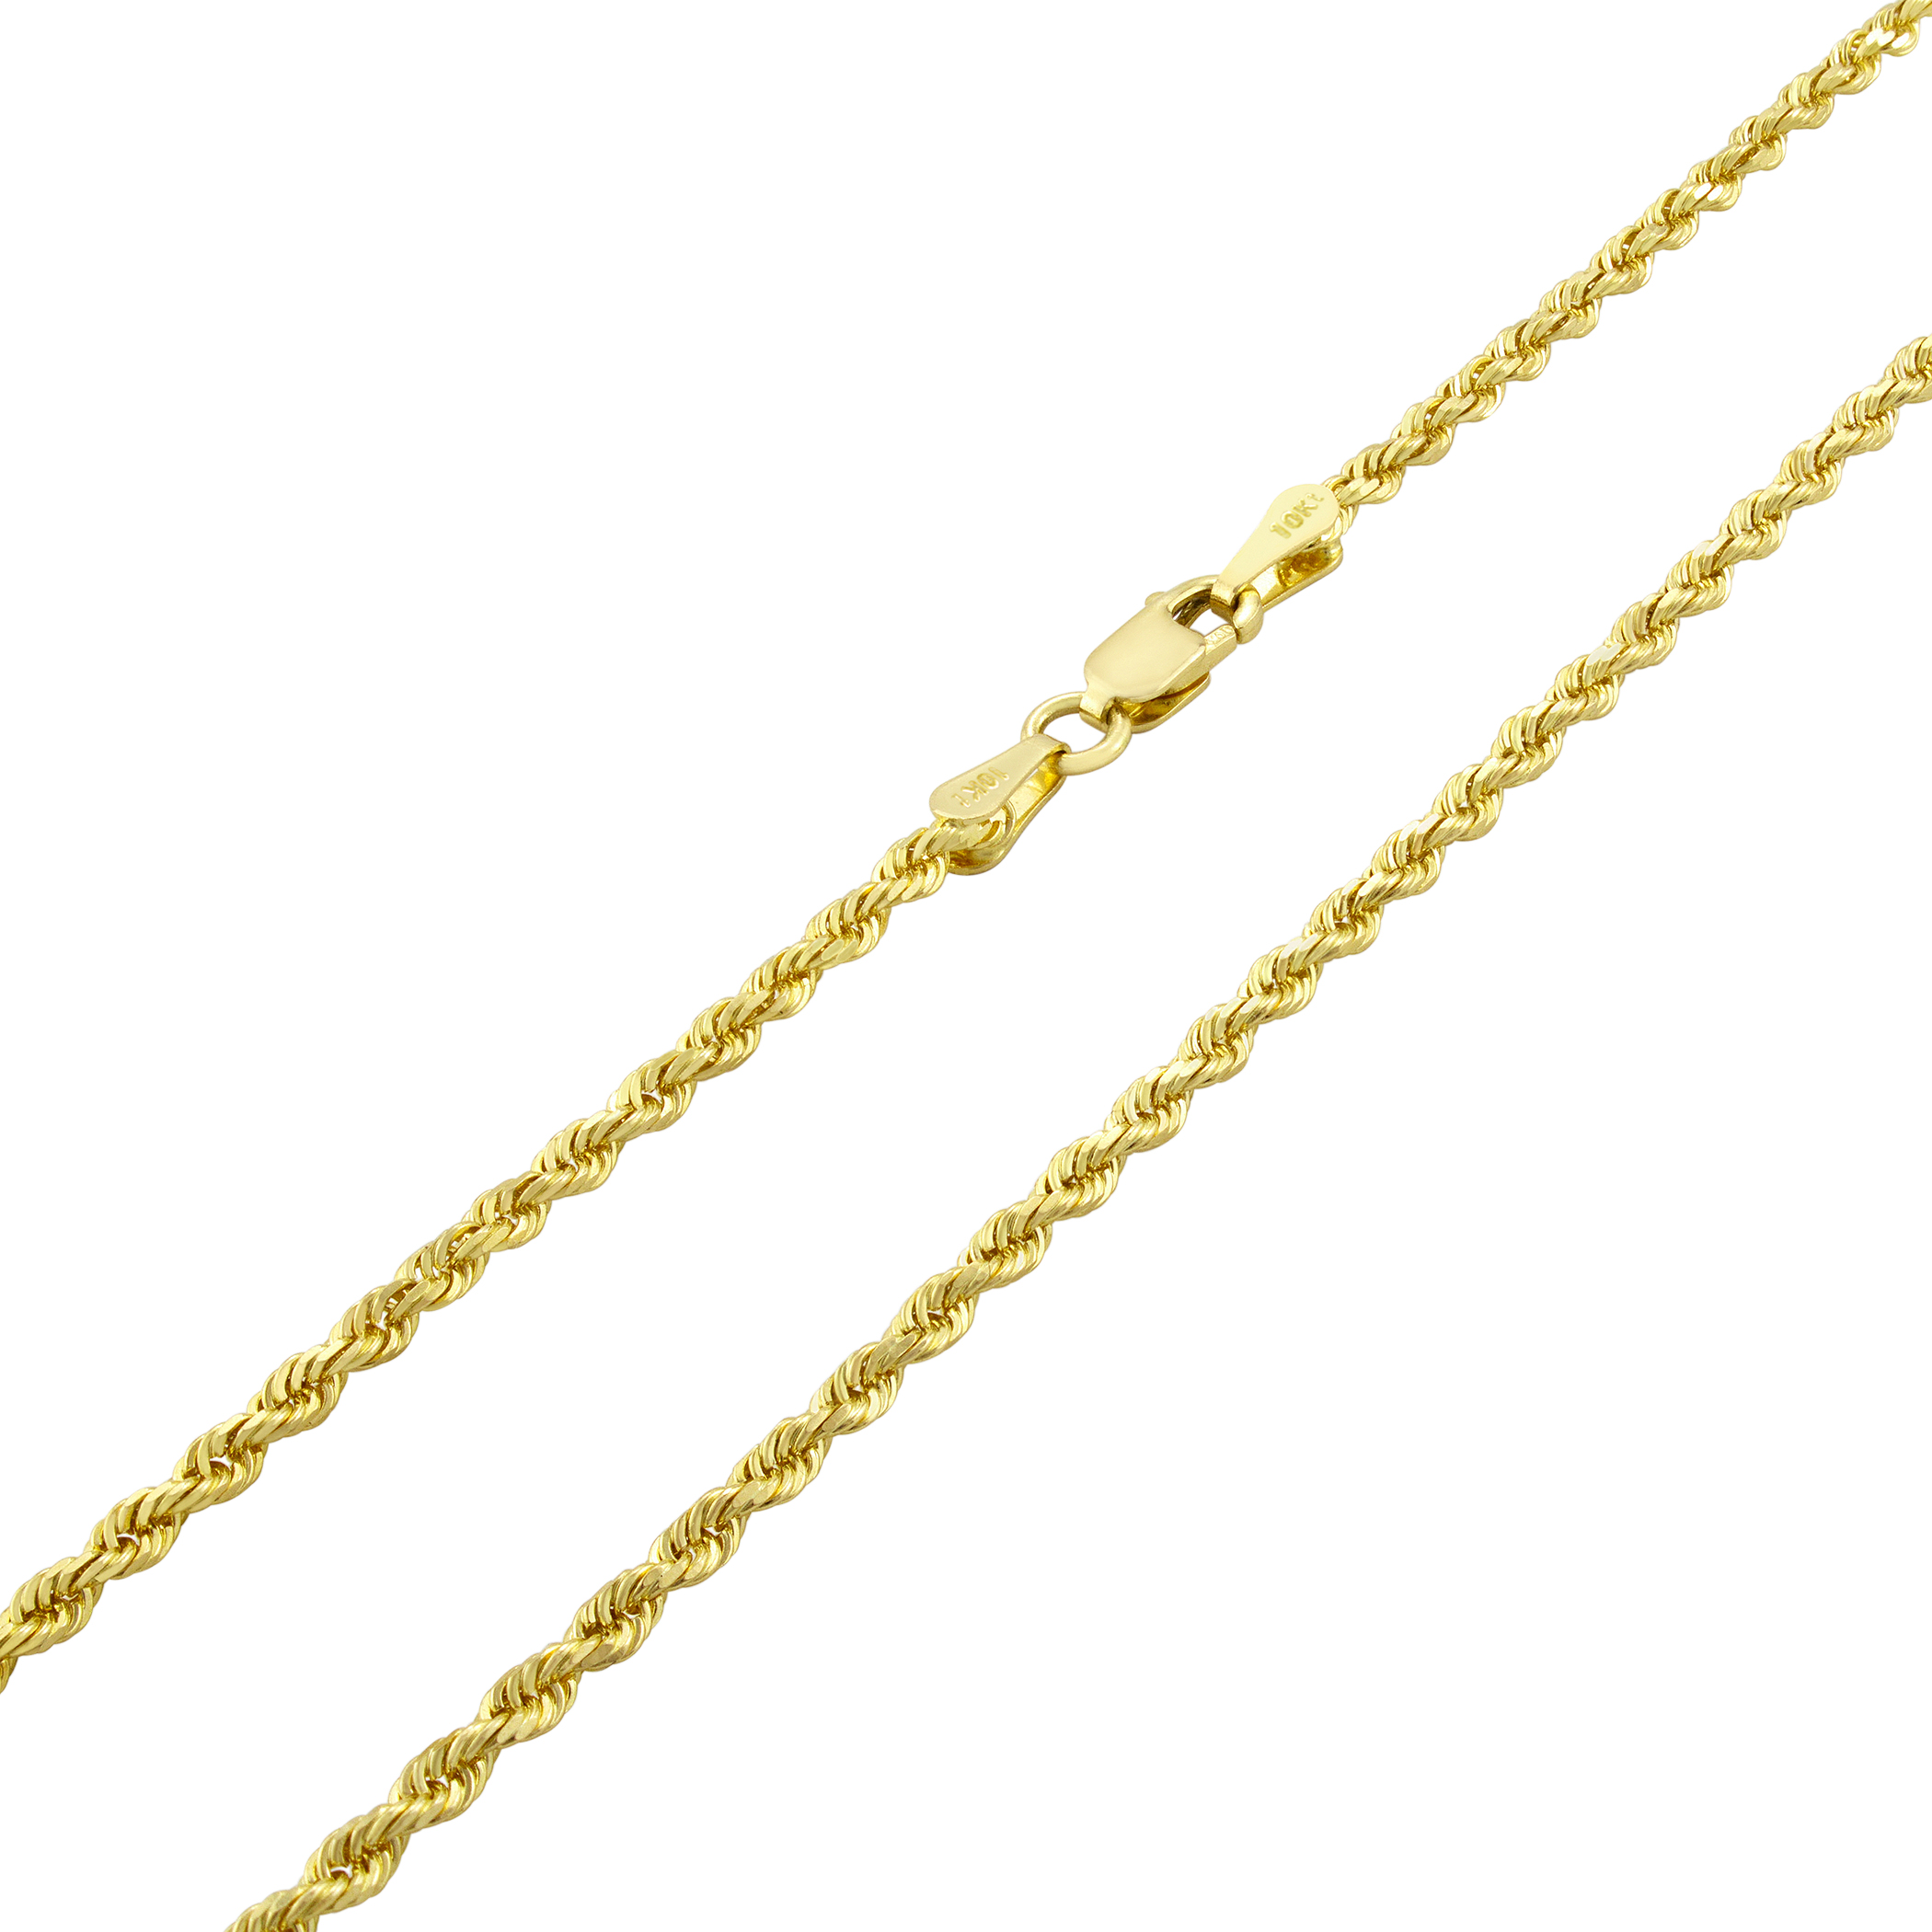 10K-Yellow-Gold-2-5mm-Solid-Rope-Chain-Pendant-Necklace-Lobster-Clasp-16-034-30-034 thumbnail 19